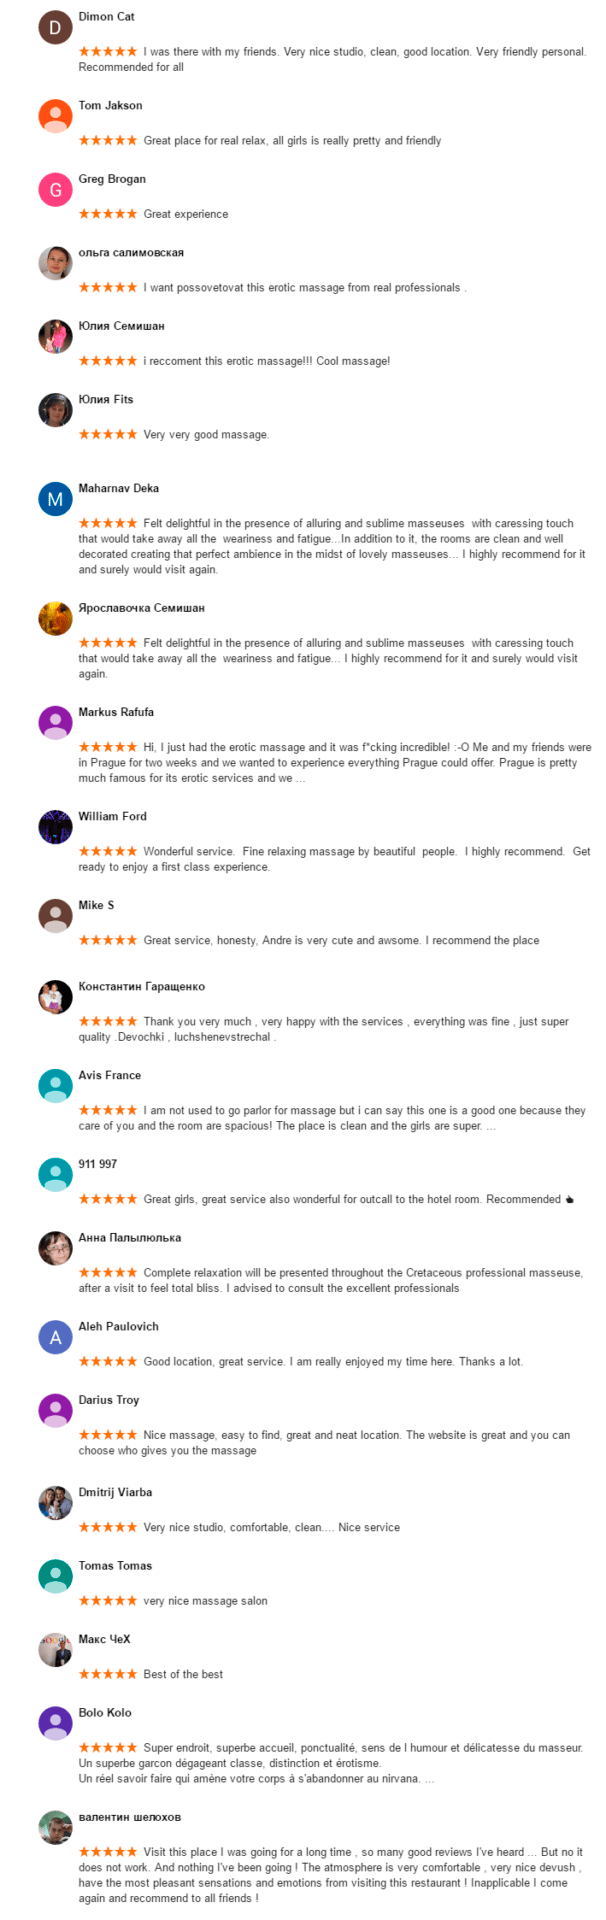 Reviews https://www.eroticpraguemassage.com/